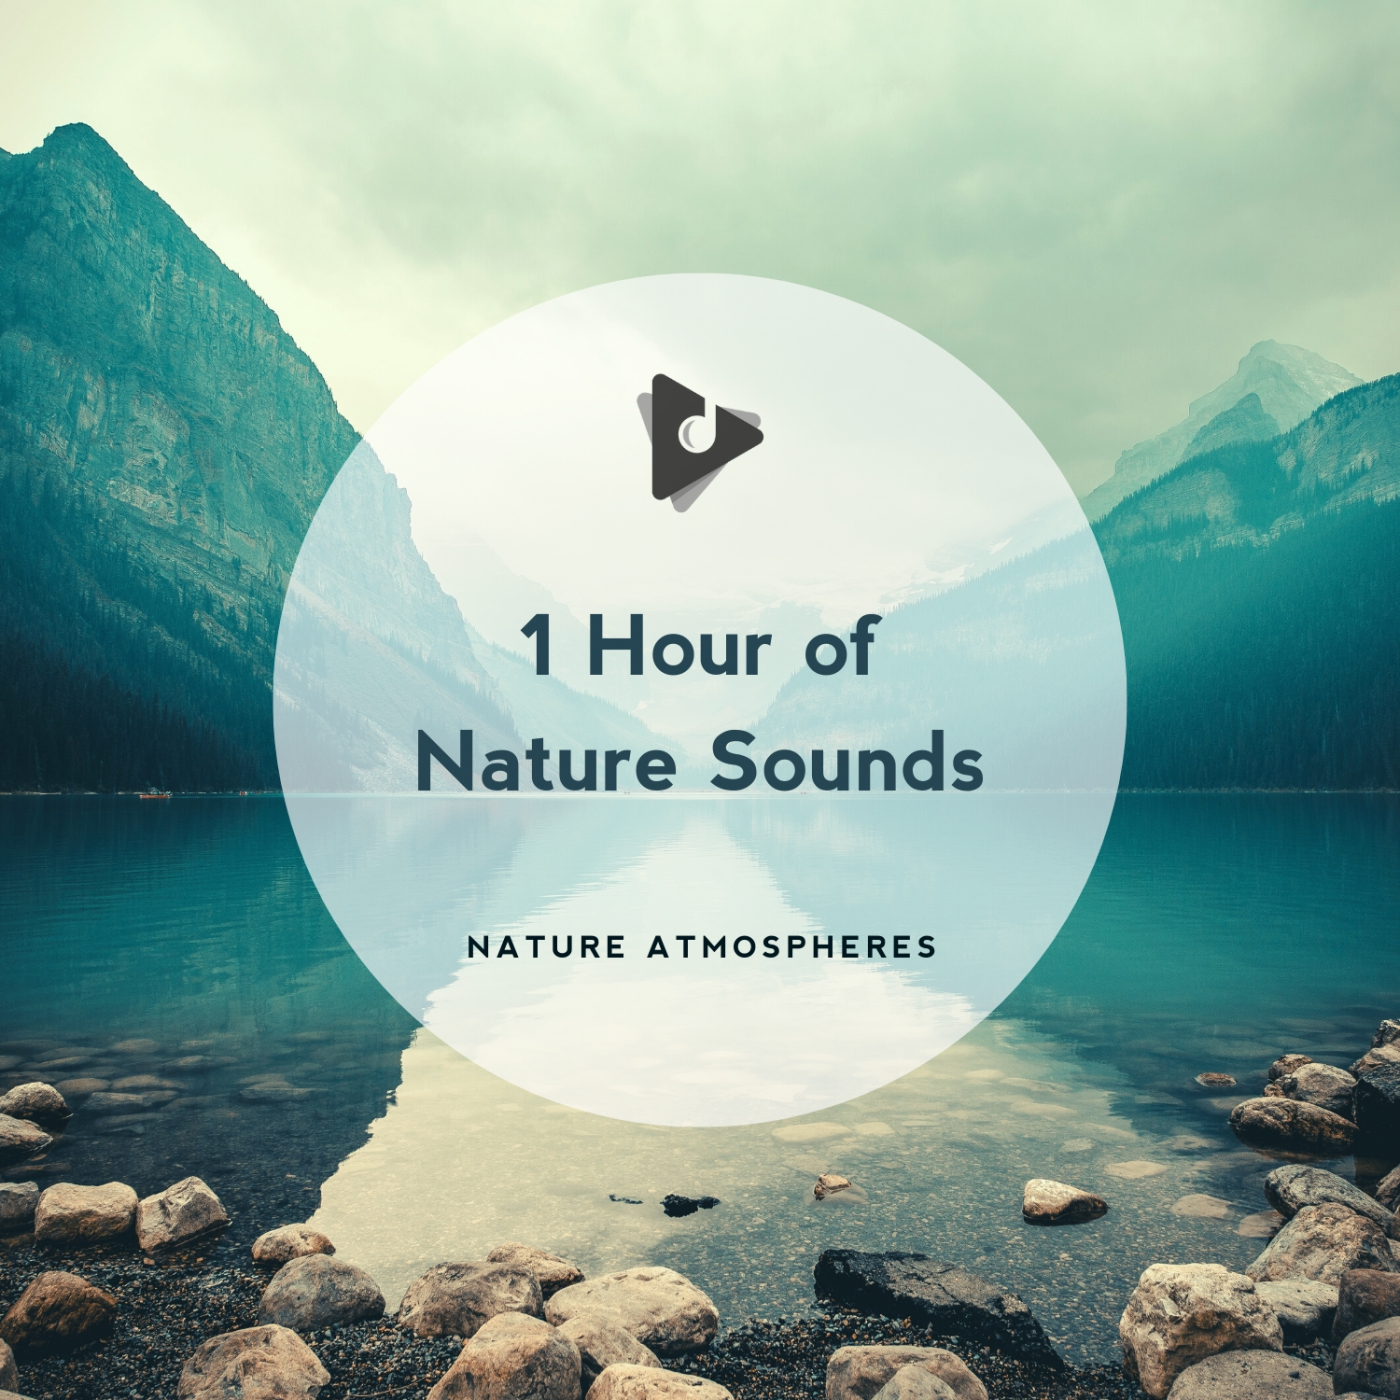 1 Hour of Nature Sounds